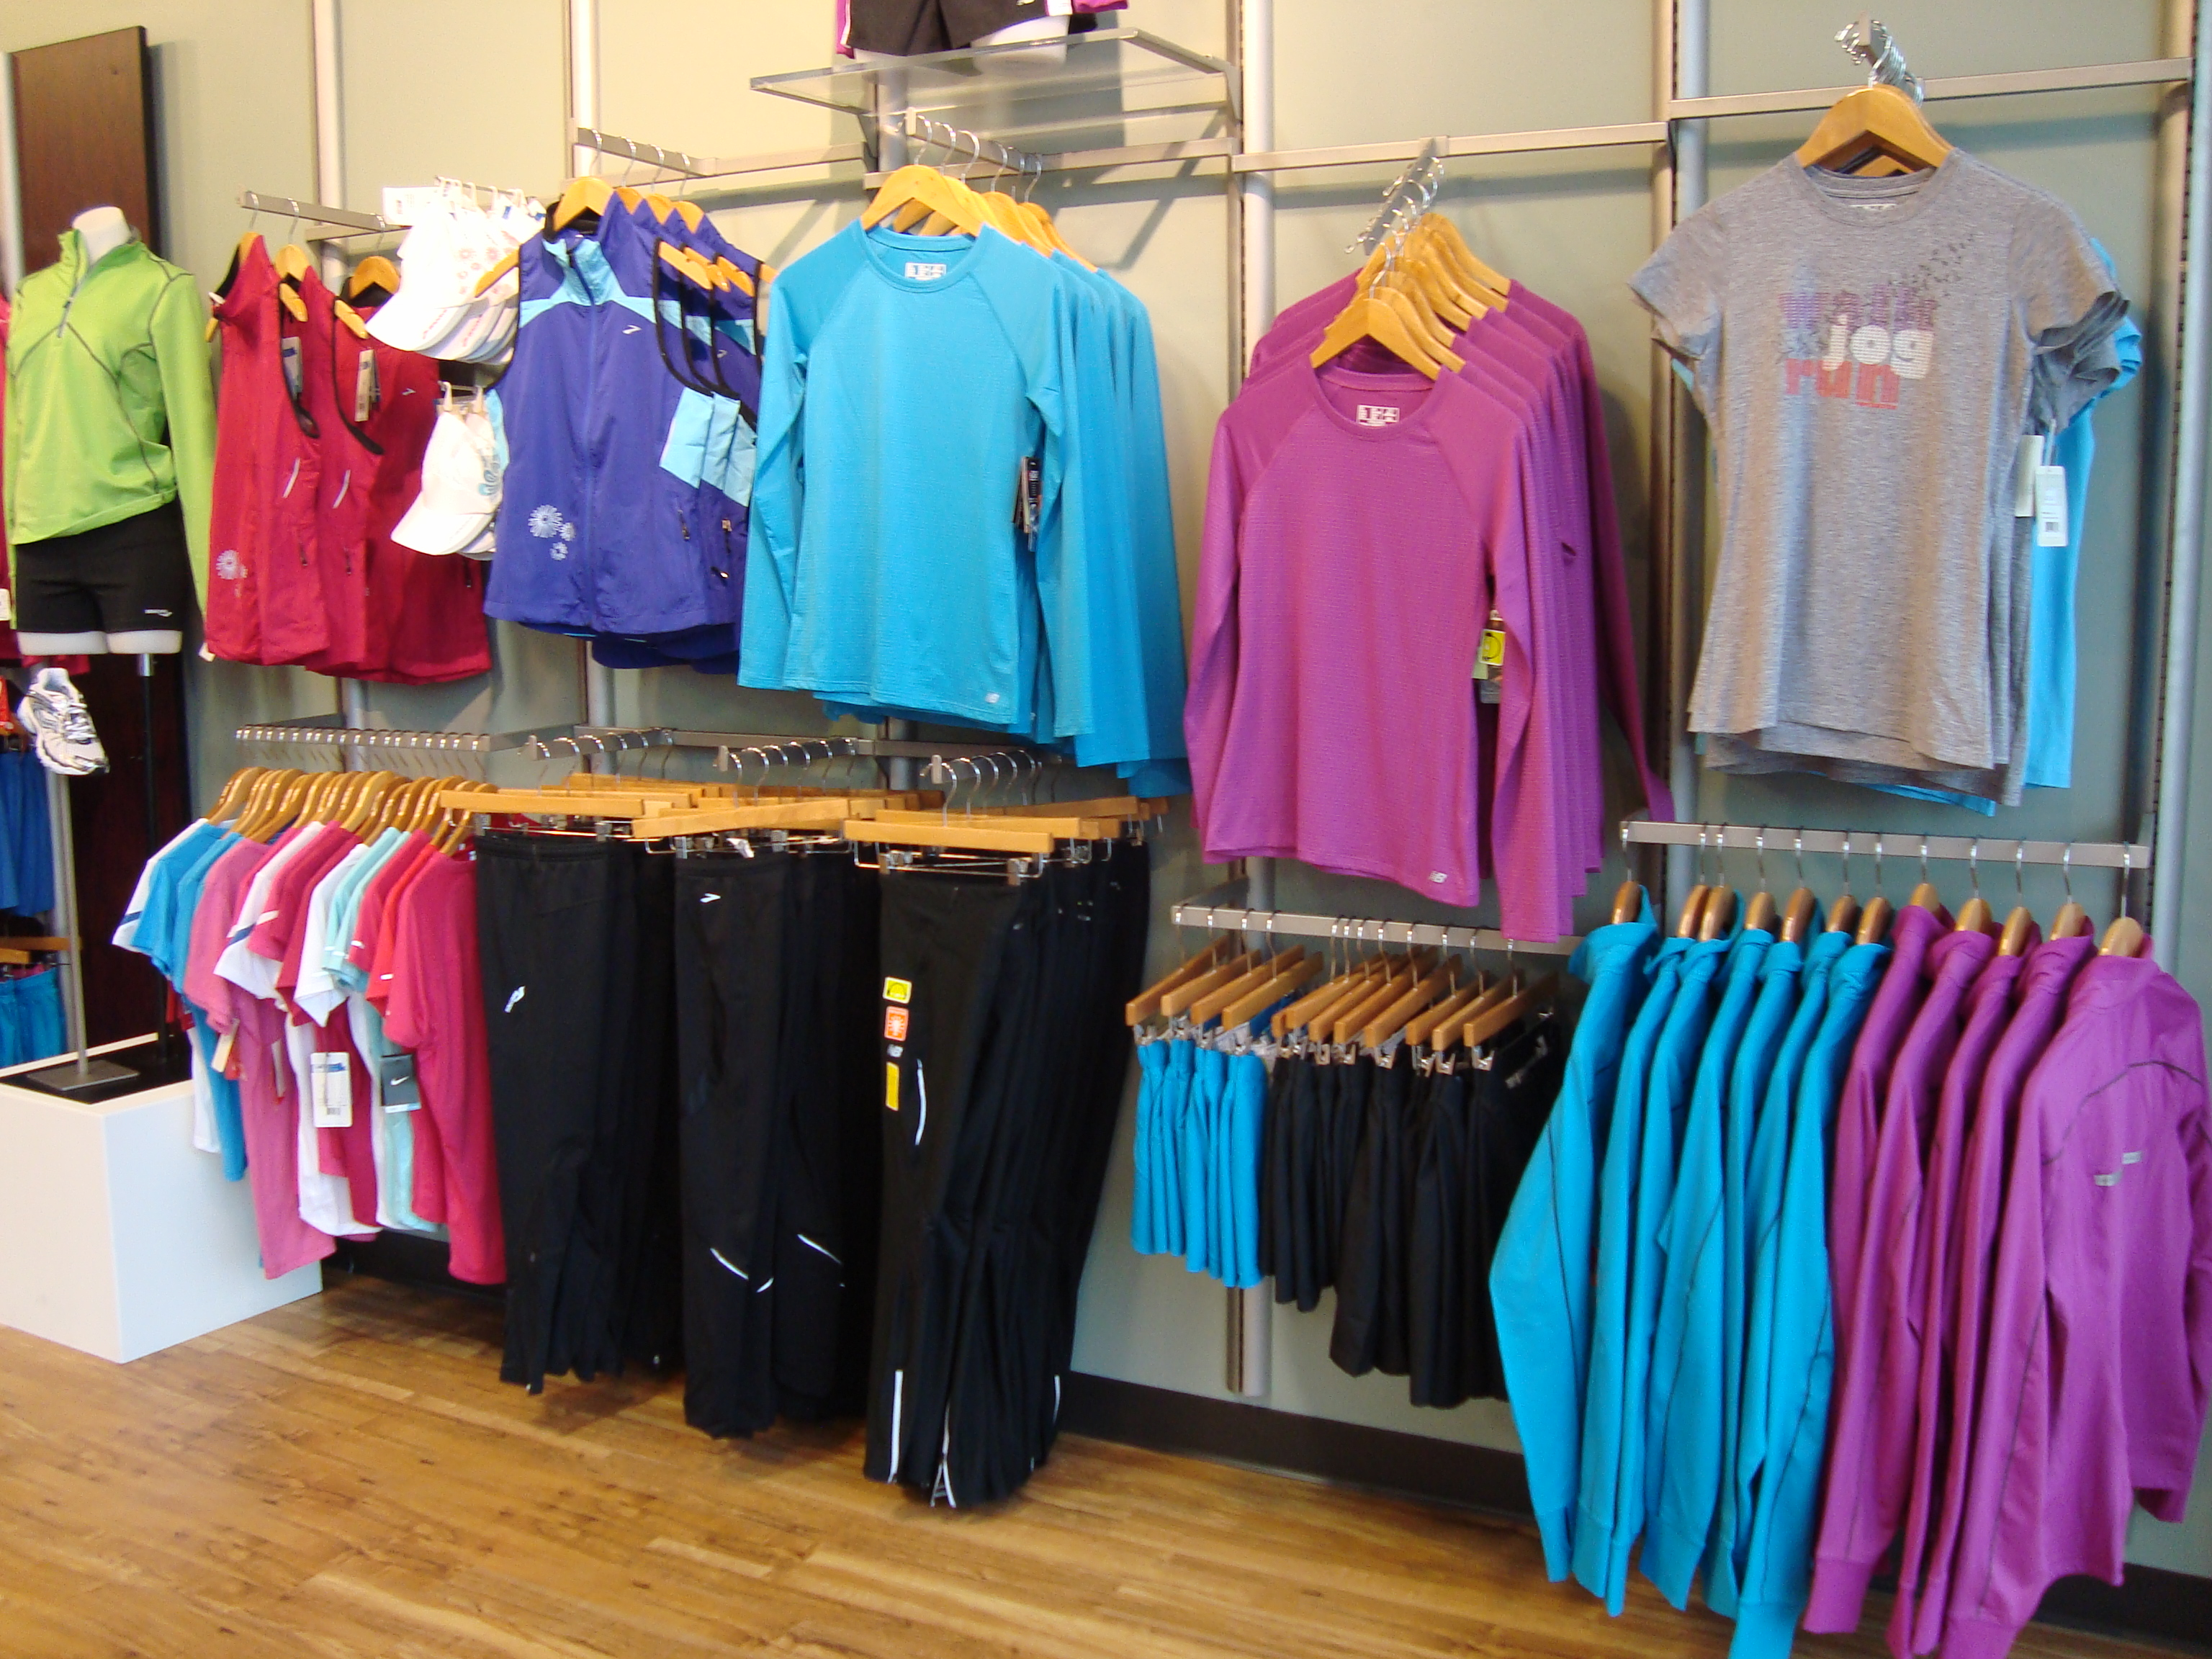 Technical apparel wicks away moisture and keeps you cool in hot weather and dry in cold weather.